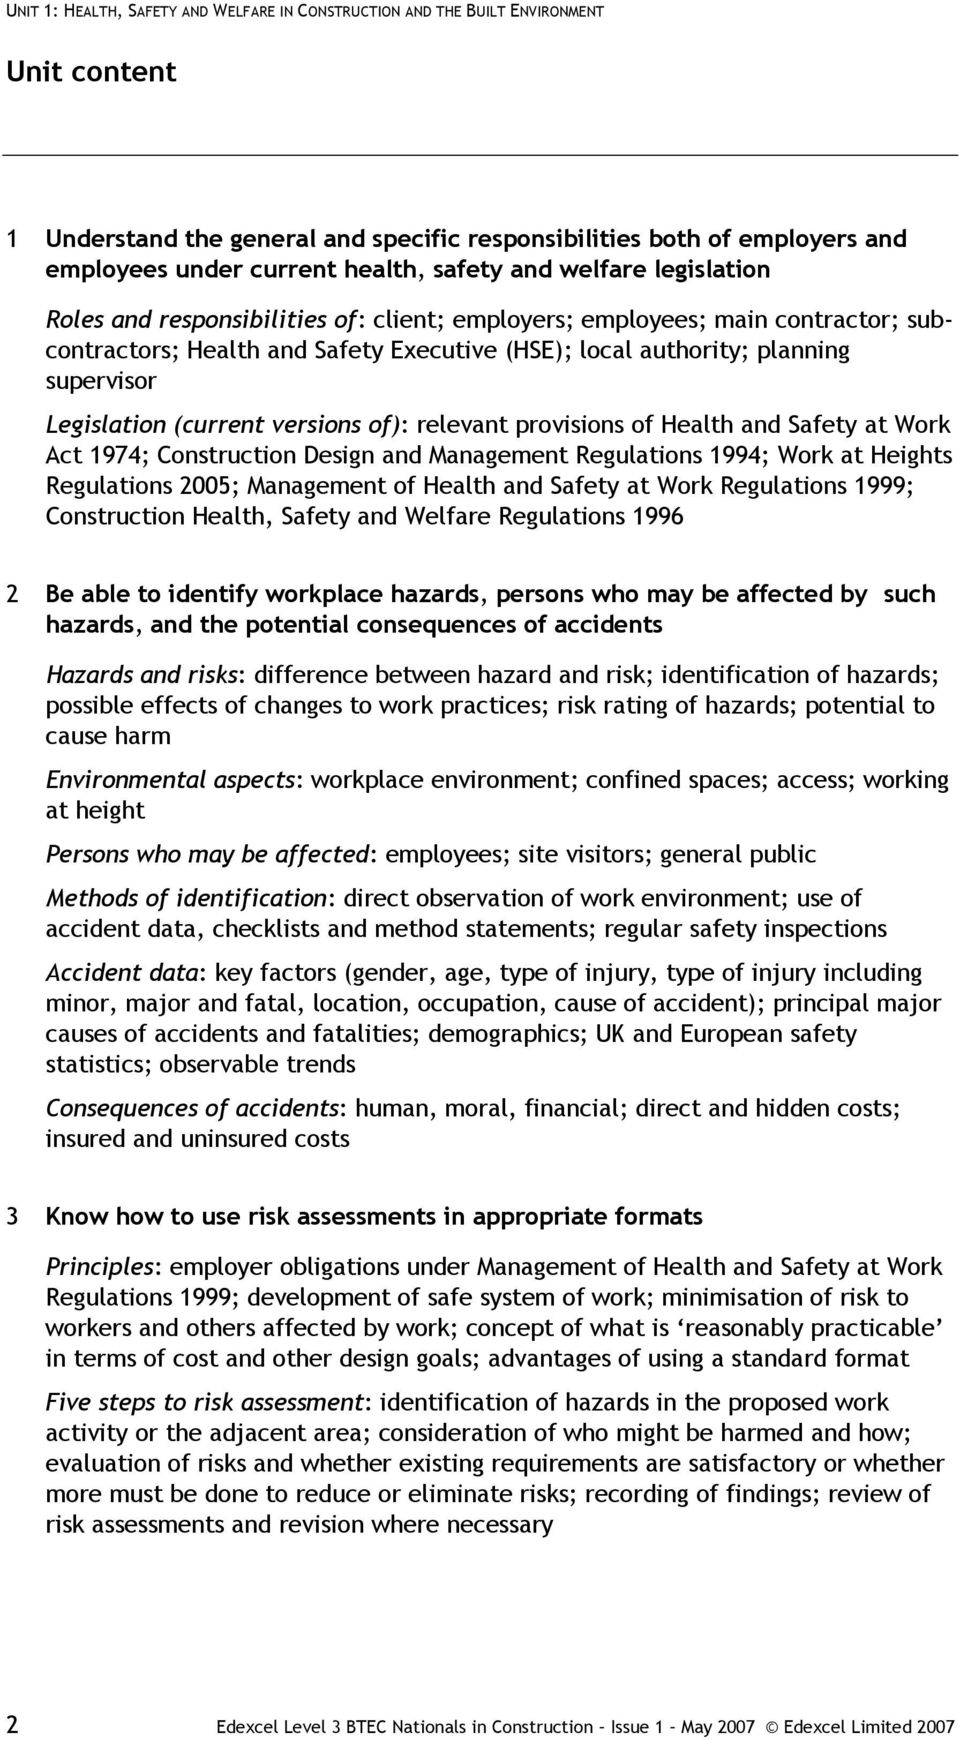 Safety at Work Act 1974; Construction Design and Management Regulations 1994; Work at Heights Regulations 2005; Management of Health and Safety at Work Regulations 1999; Construction Health, Safety